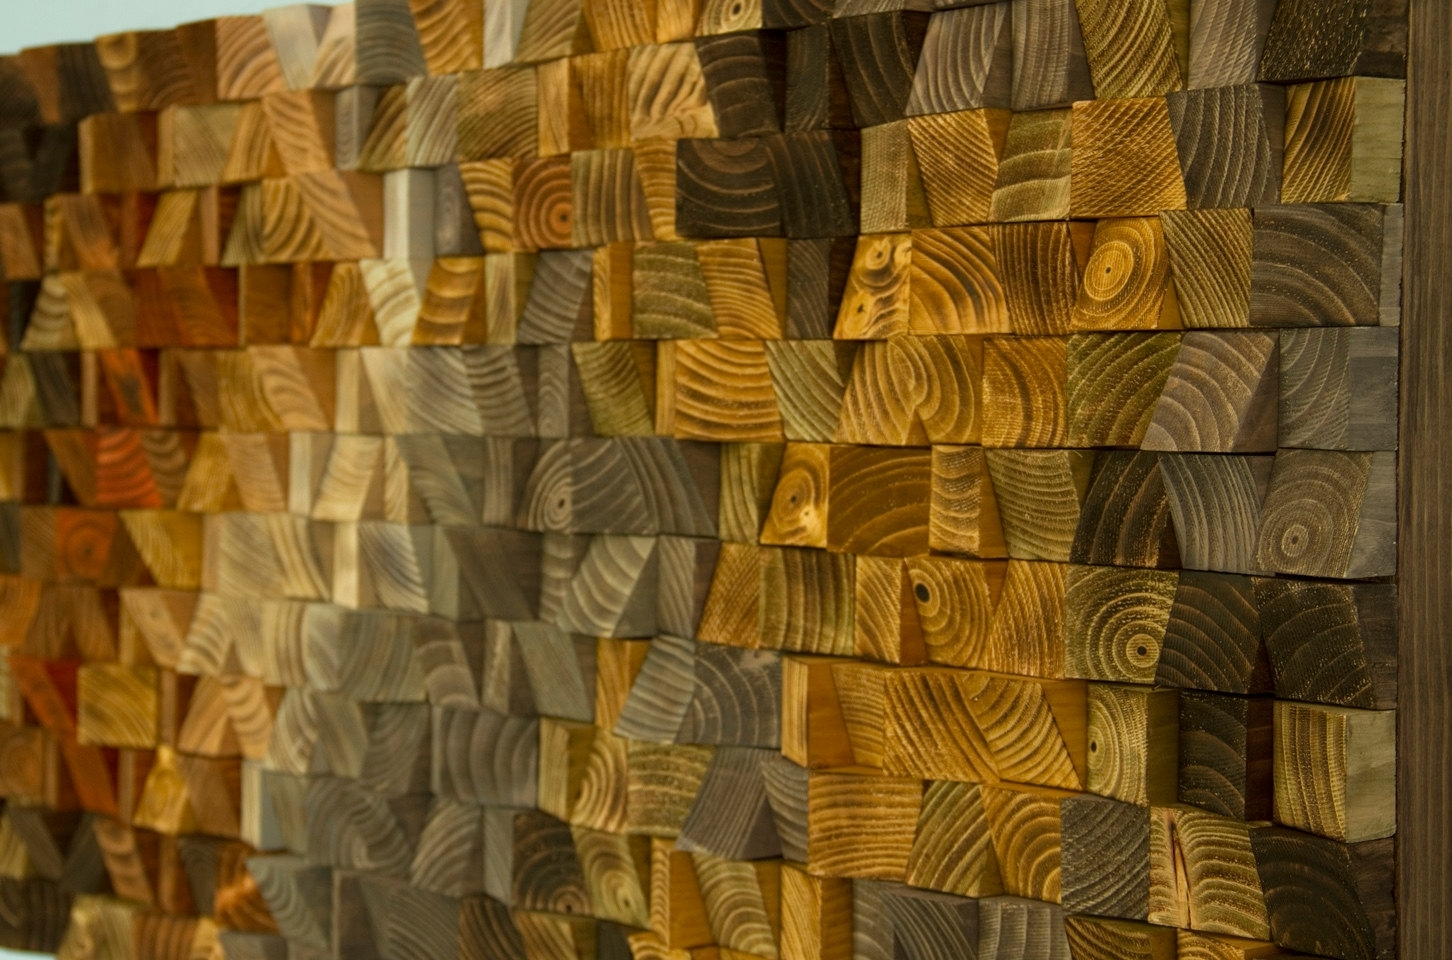 Rustic Wood Wall Art, Wood Wall Sculpture, Abstract Wood Art Mosaic With Current Abstract Mosaic Wall Art (View 2 of 20)